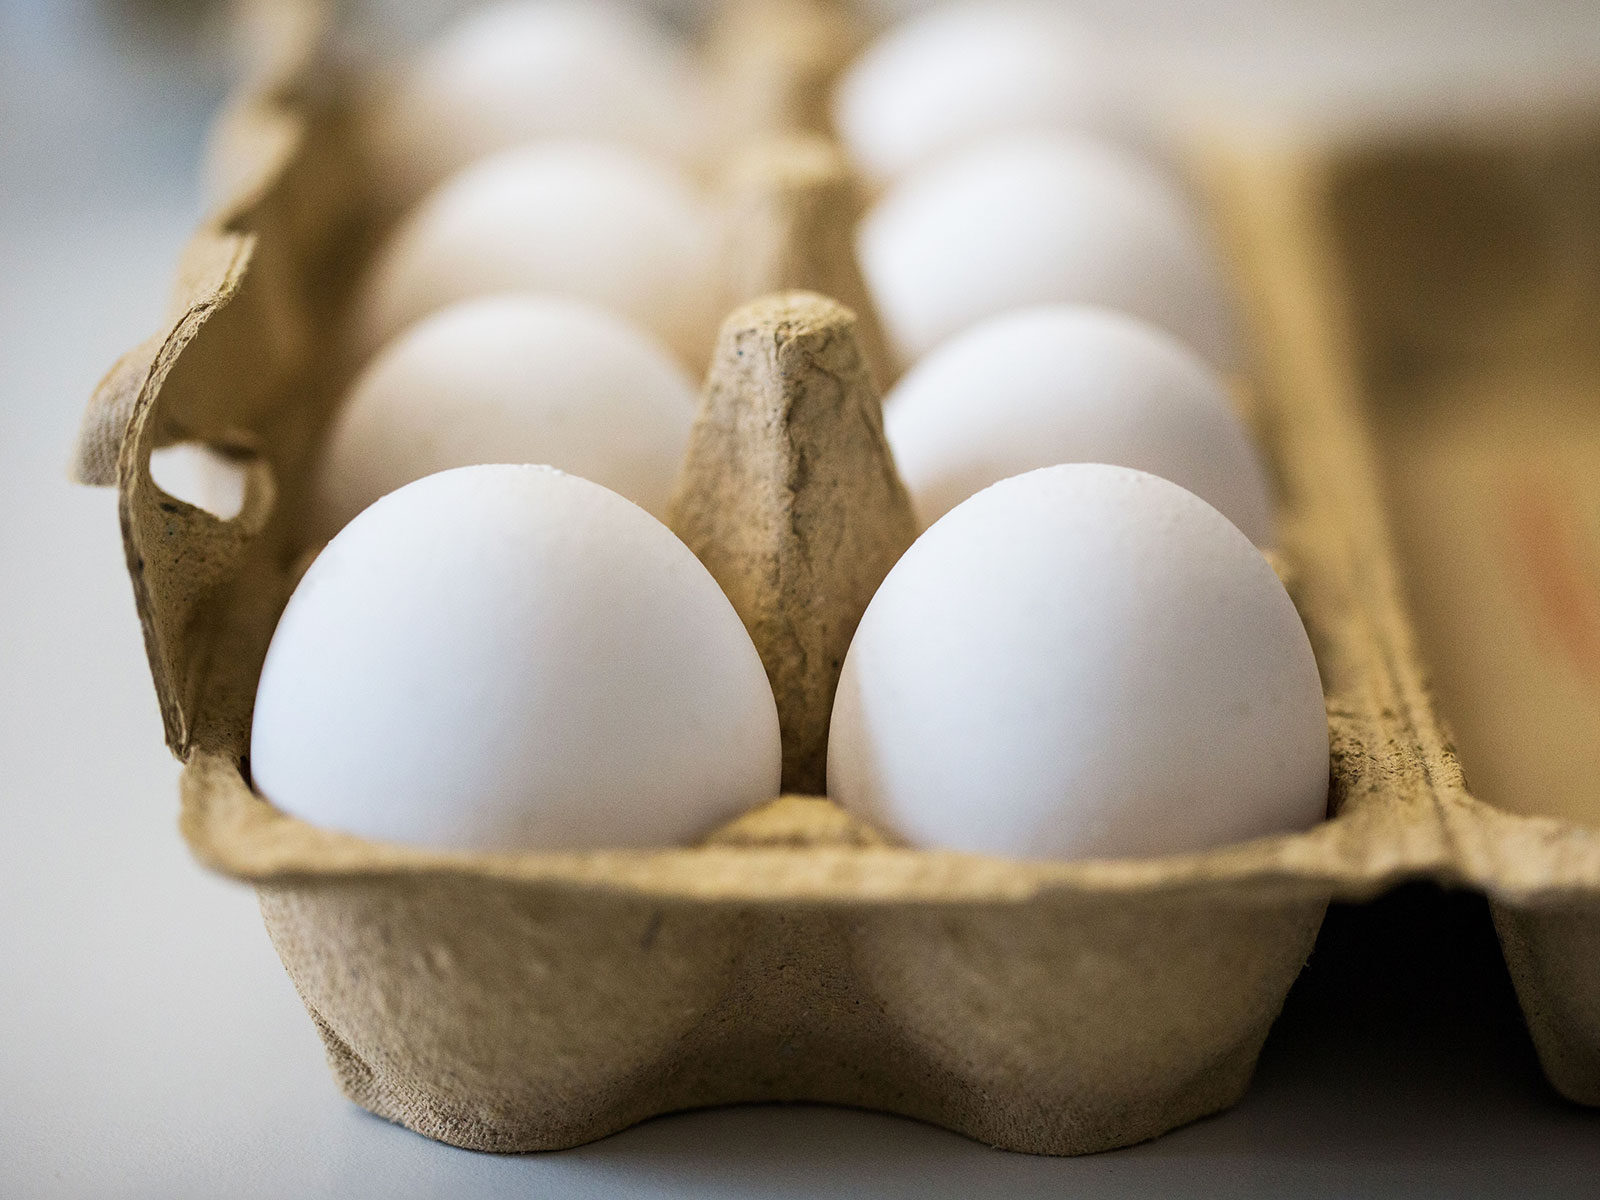 european eggs contaminated